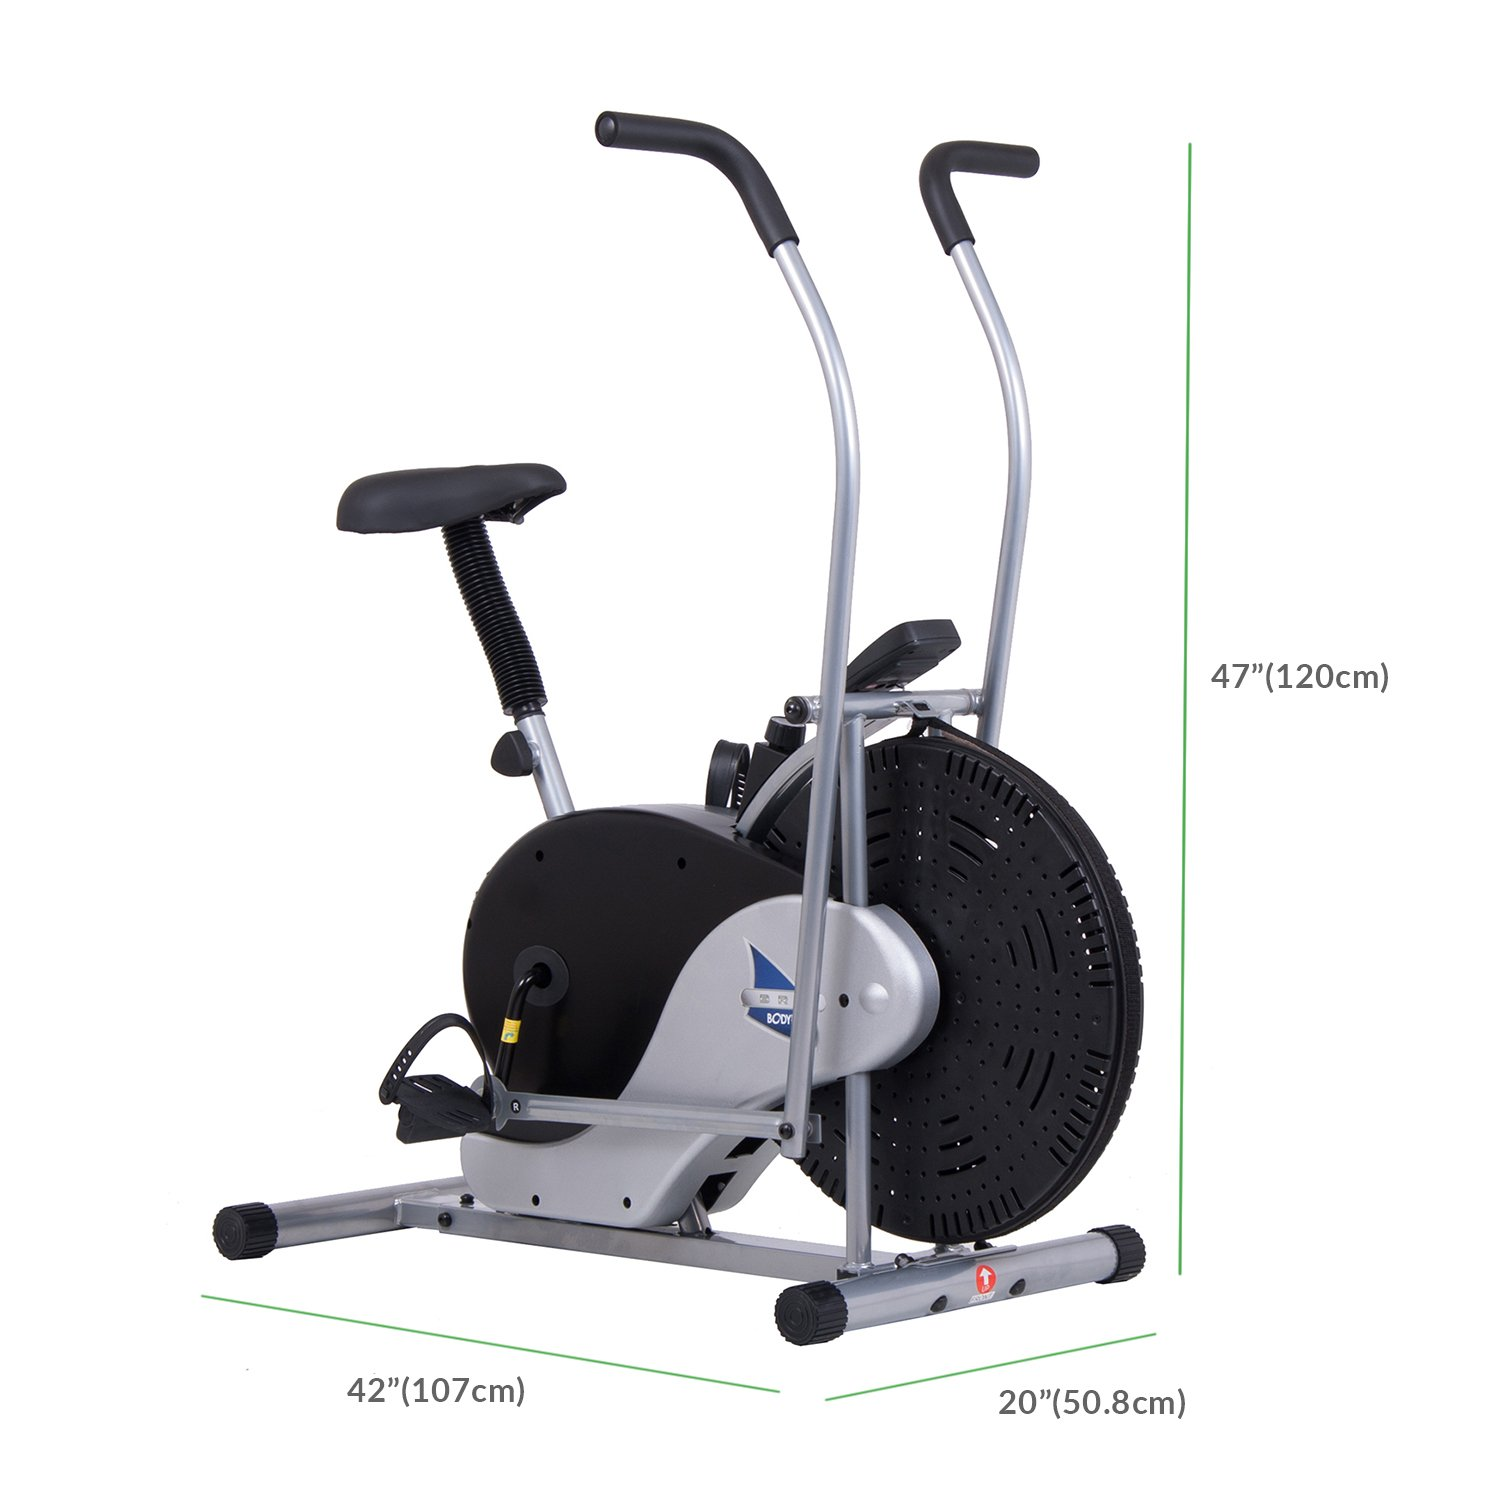 Body Rider Exercise Upright Fan Bike (with UPDATED Softer Seat) Stationary Fitness/Adjustable Seat BRF700 by Body Rider (Image #3)